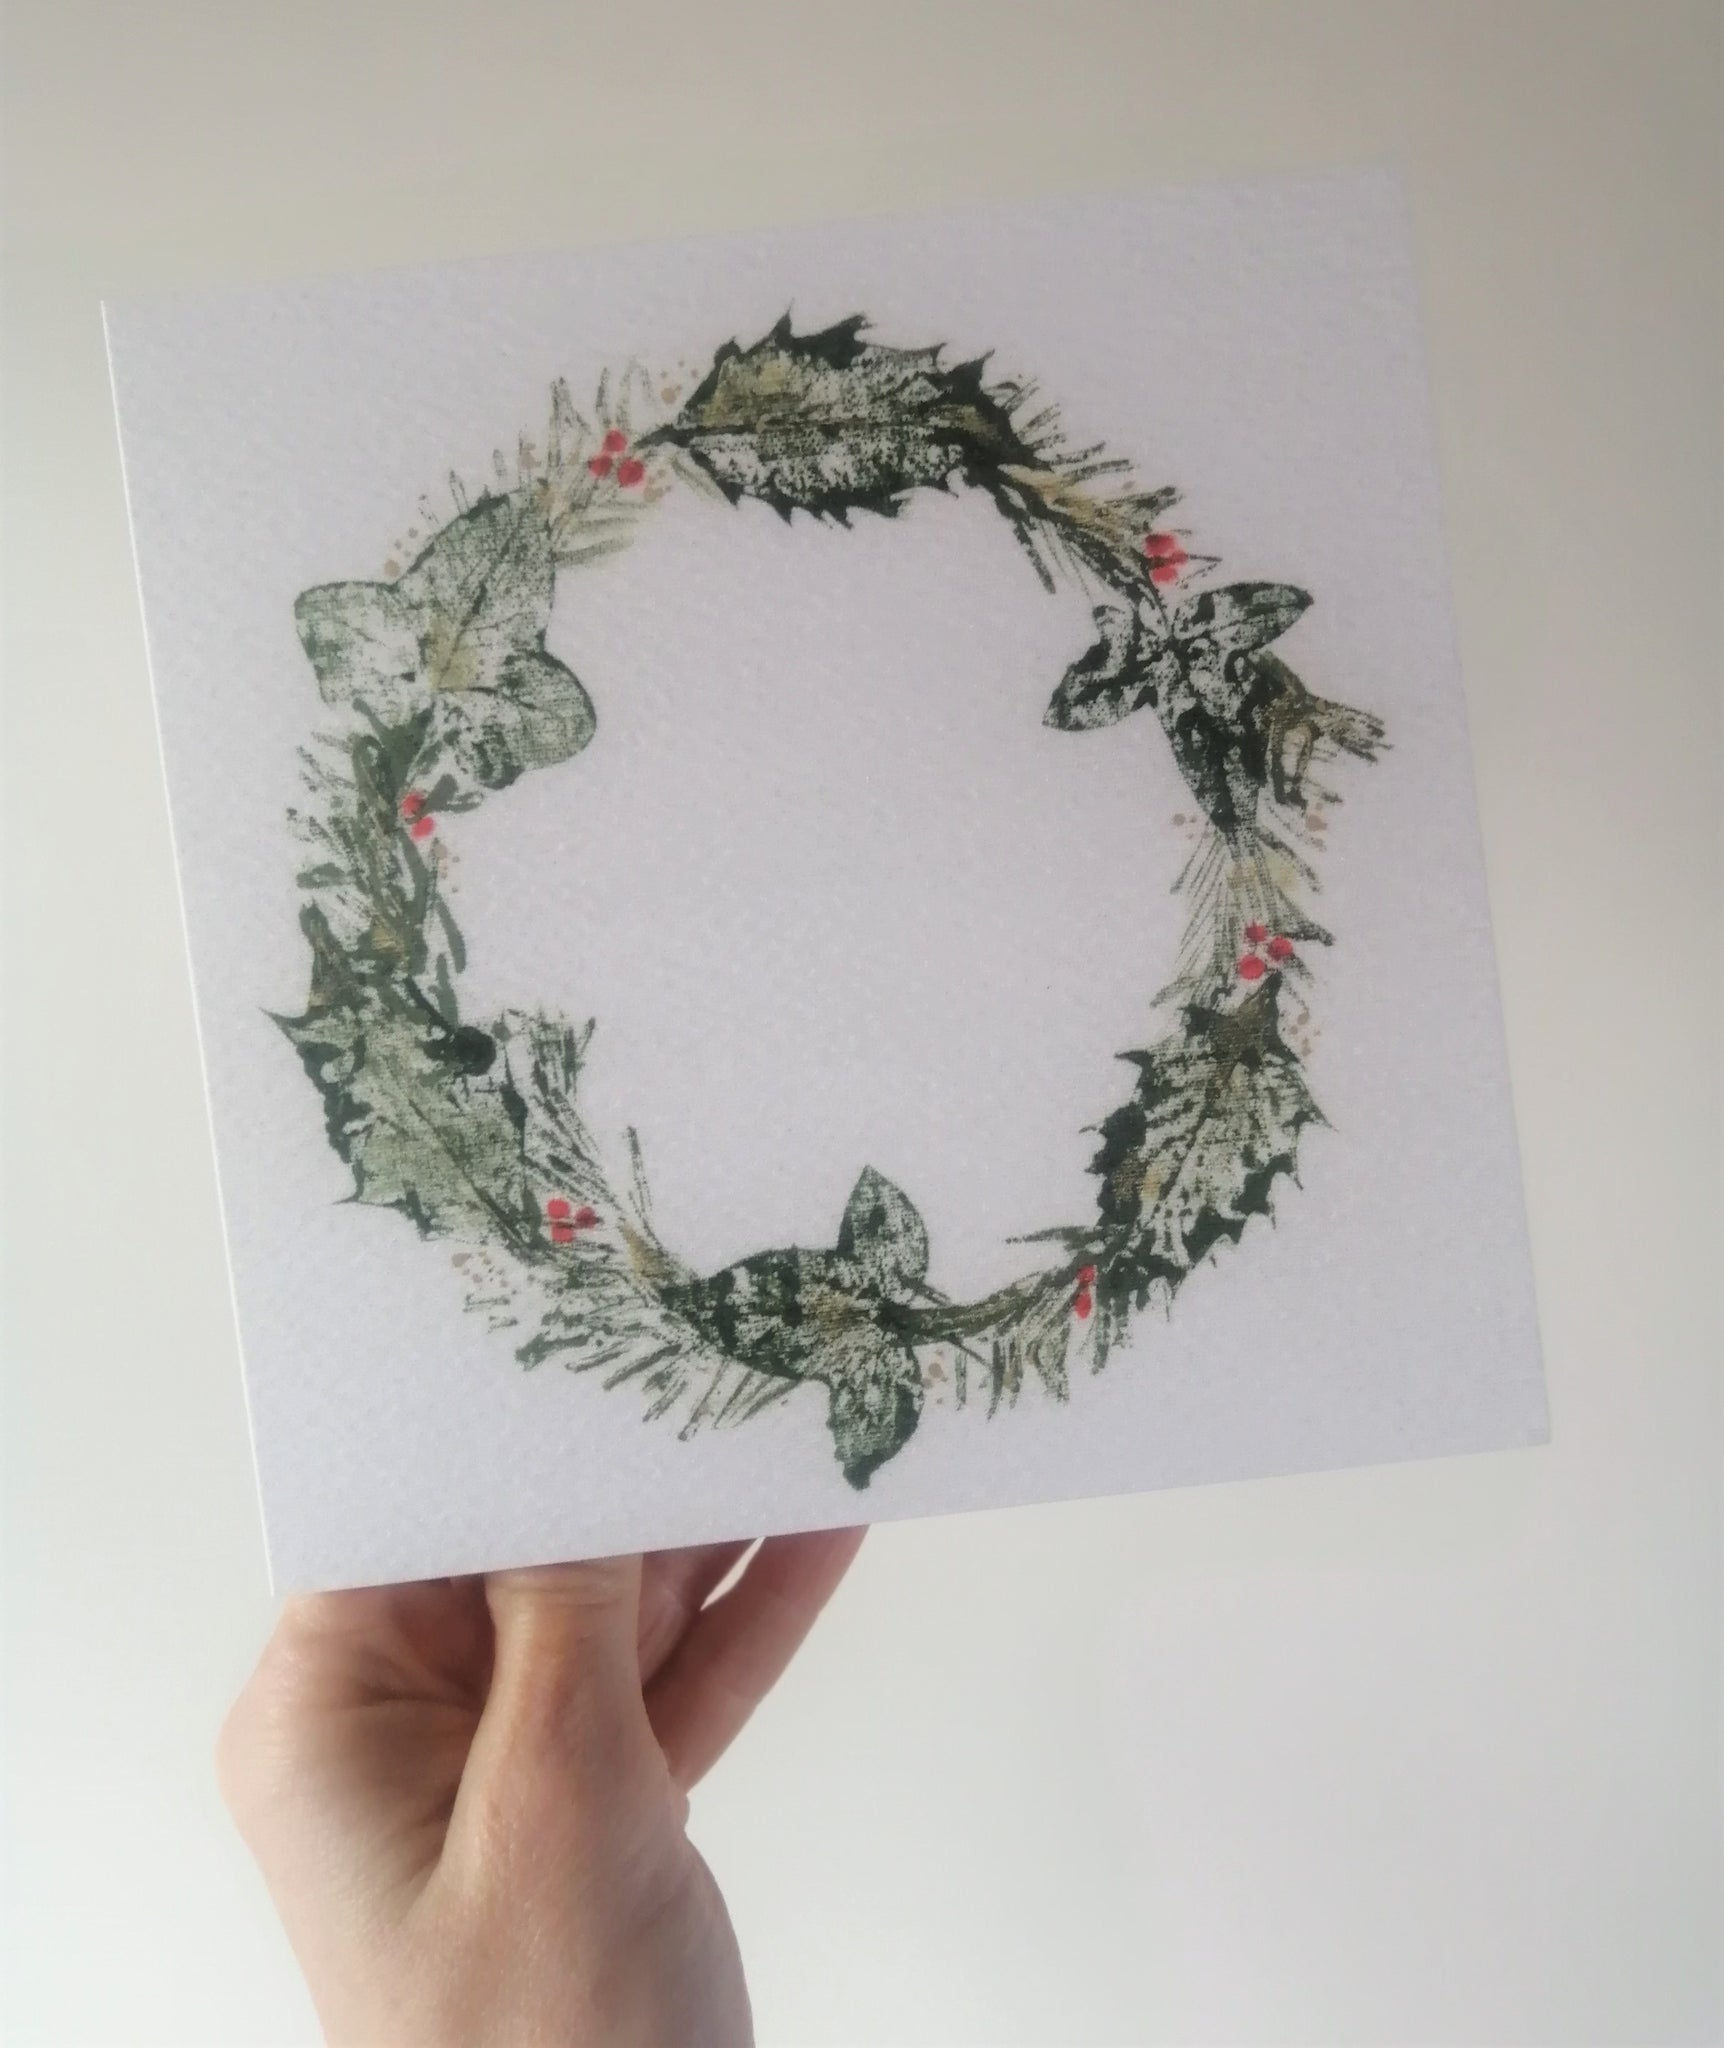 Christmas Woodland Wreath Art Greetings Card/Set of Cards